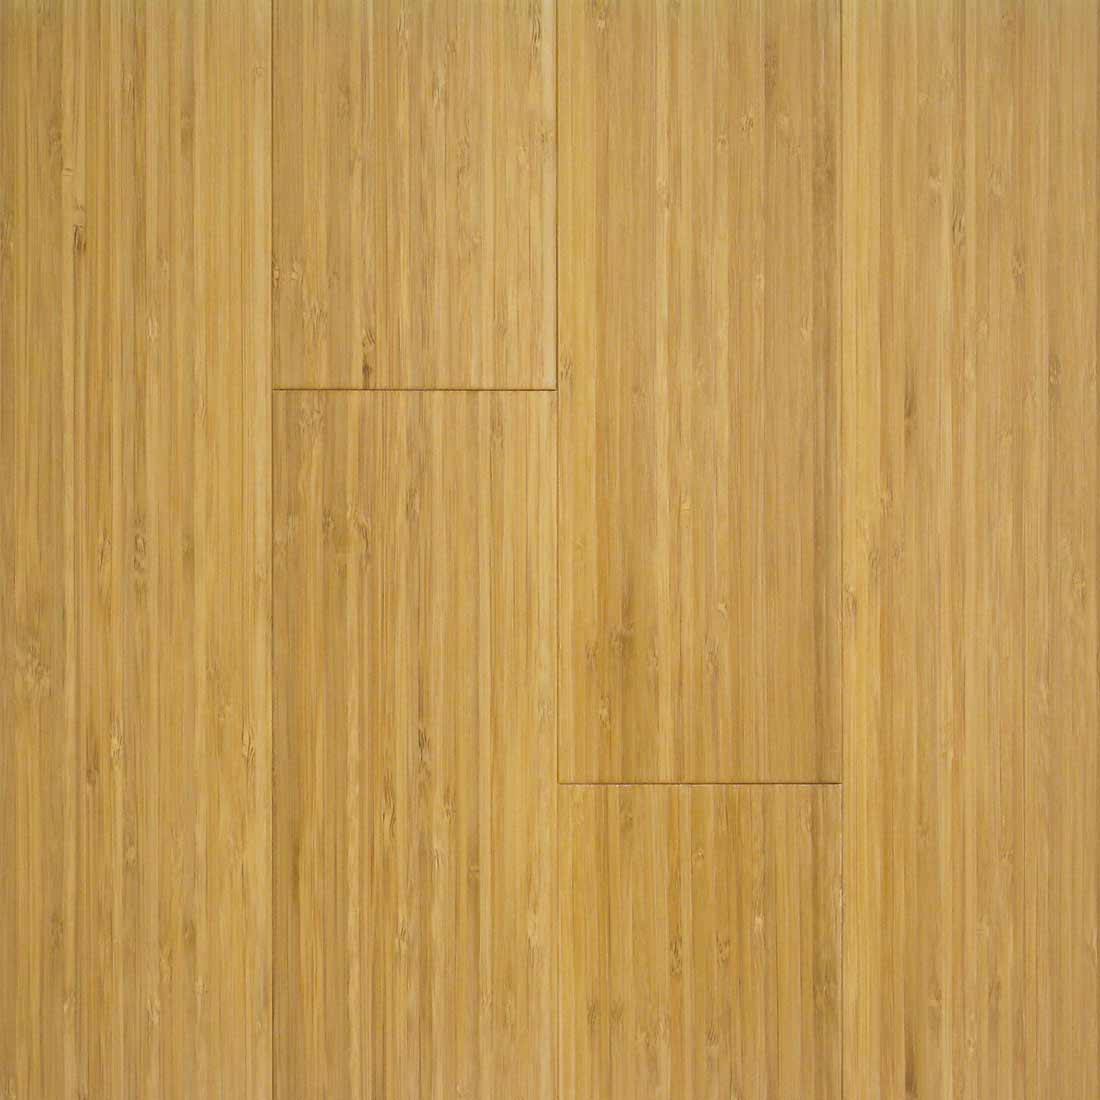 Carbonized Vertical Matte Hawa Bamboo Flooring